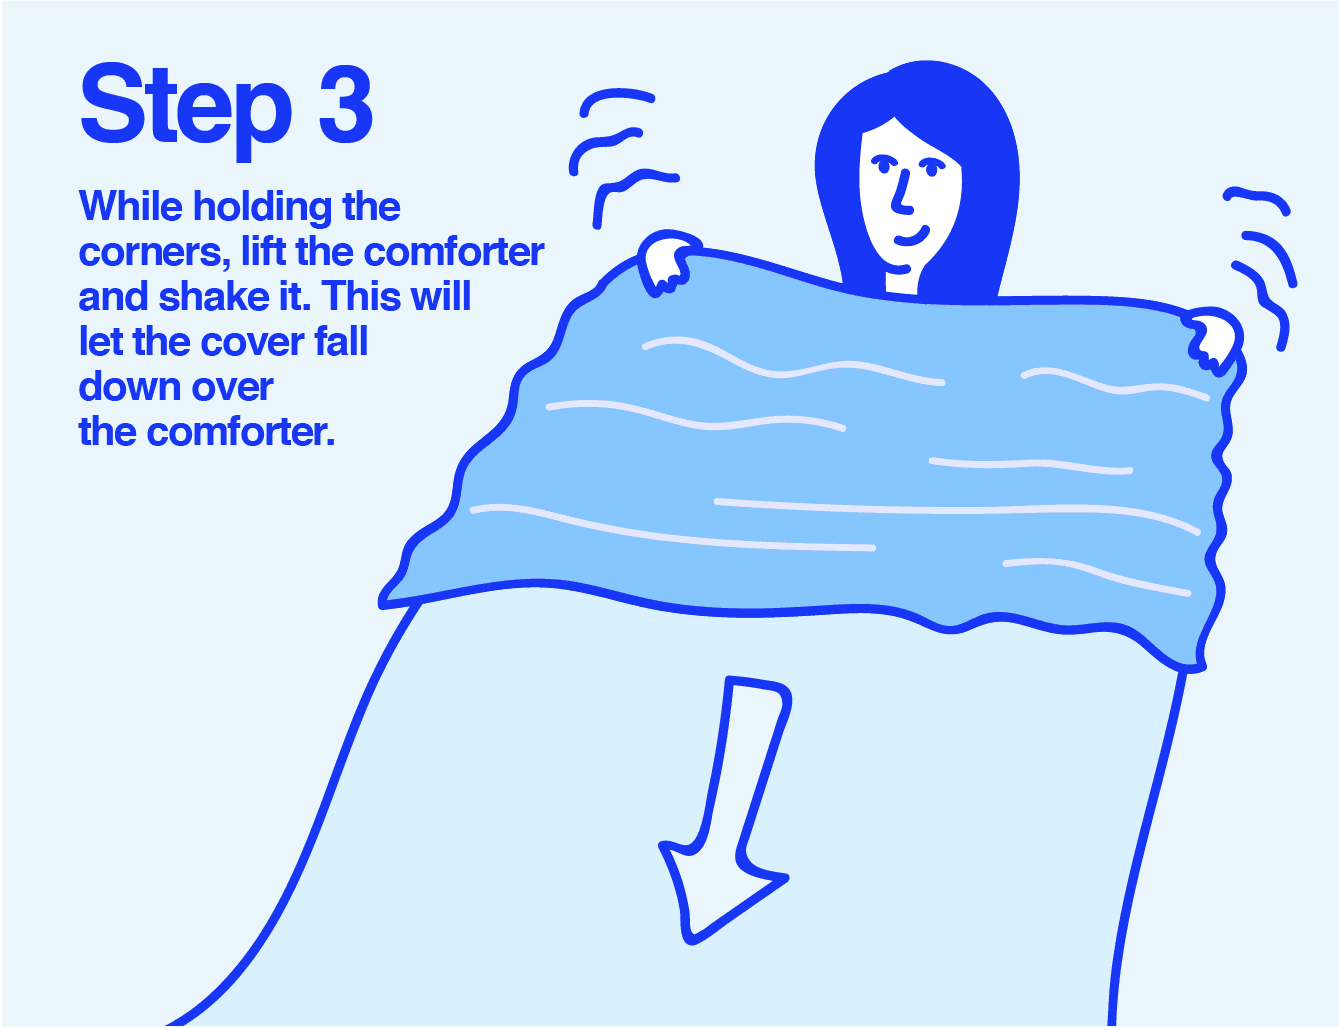 Infographic of woman putting duvet cover over comforter